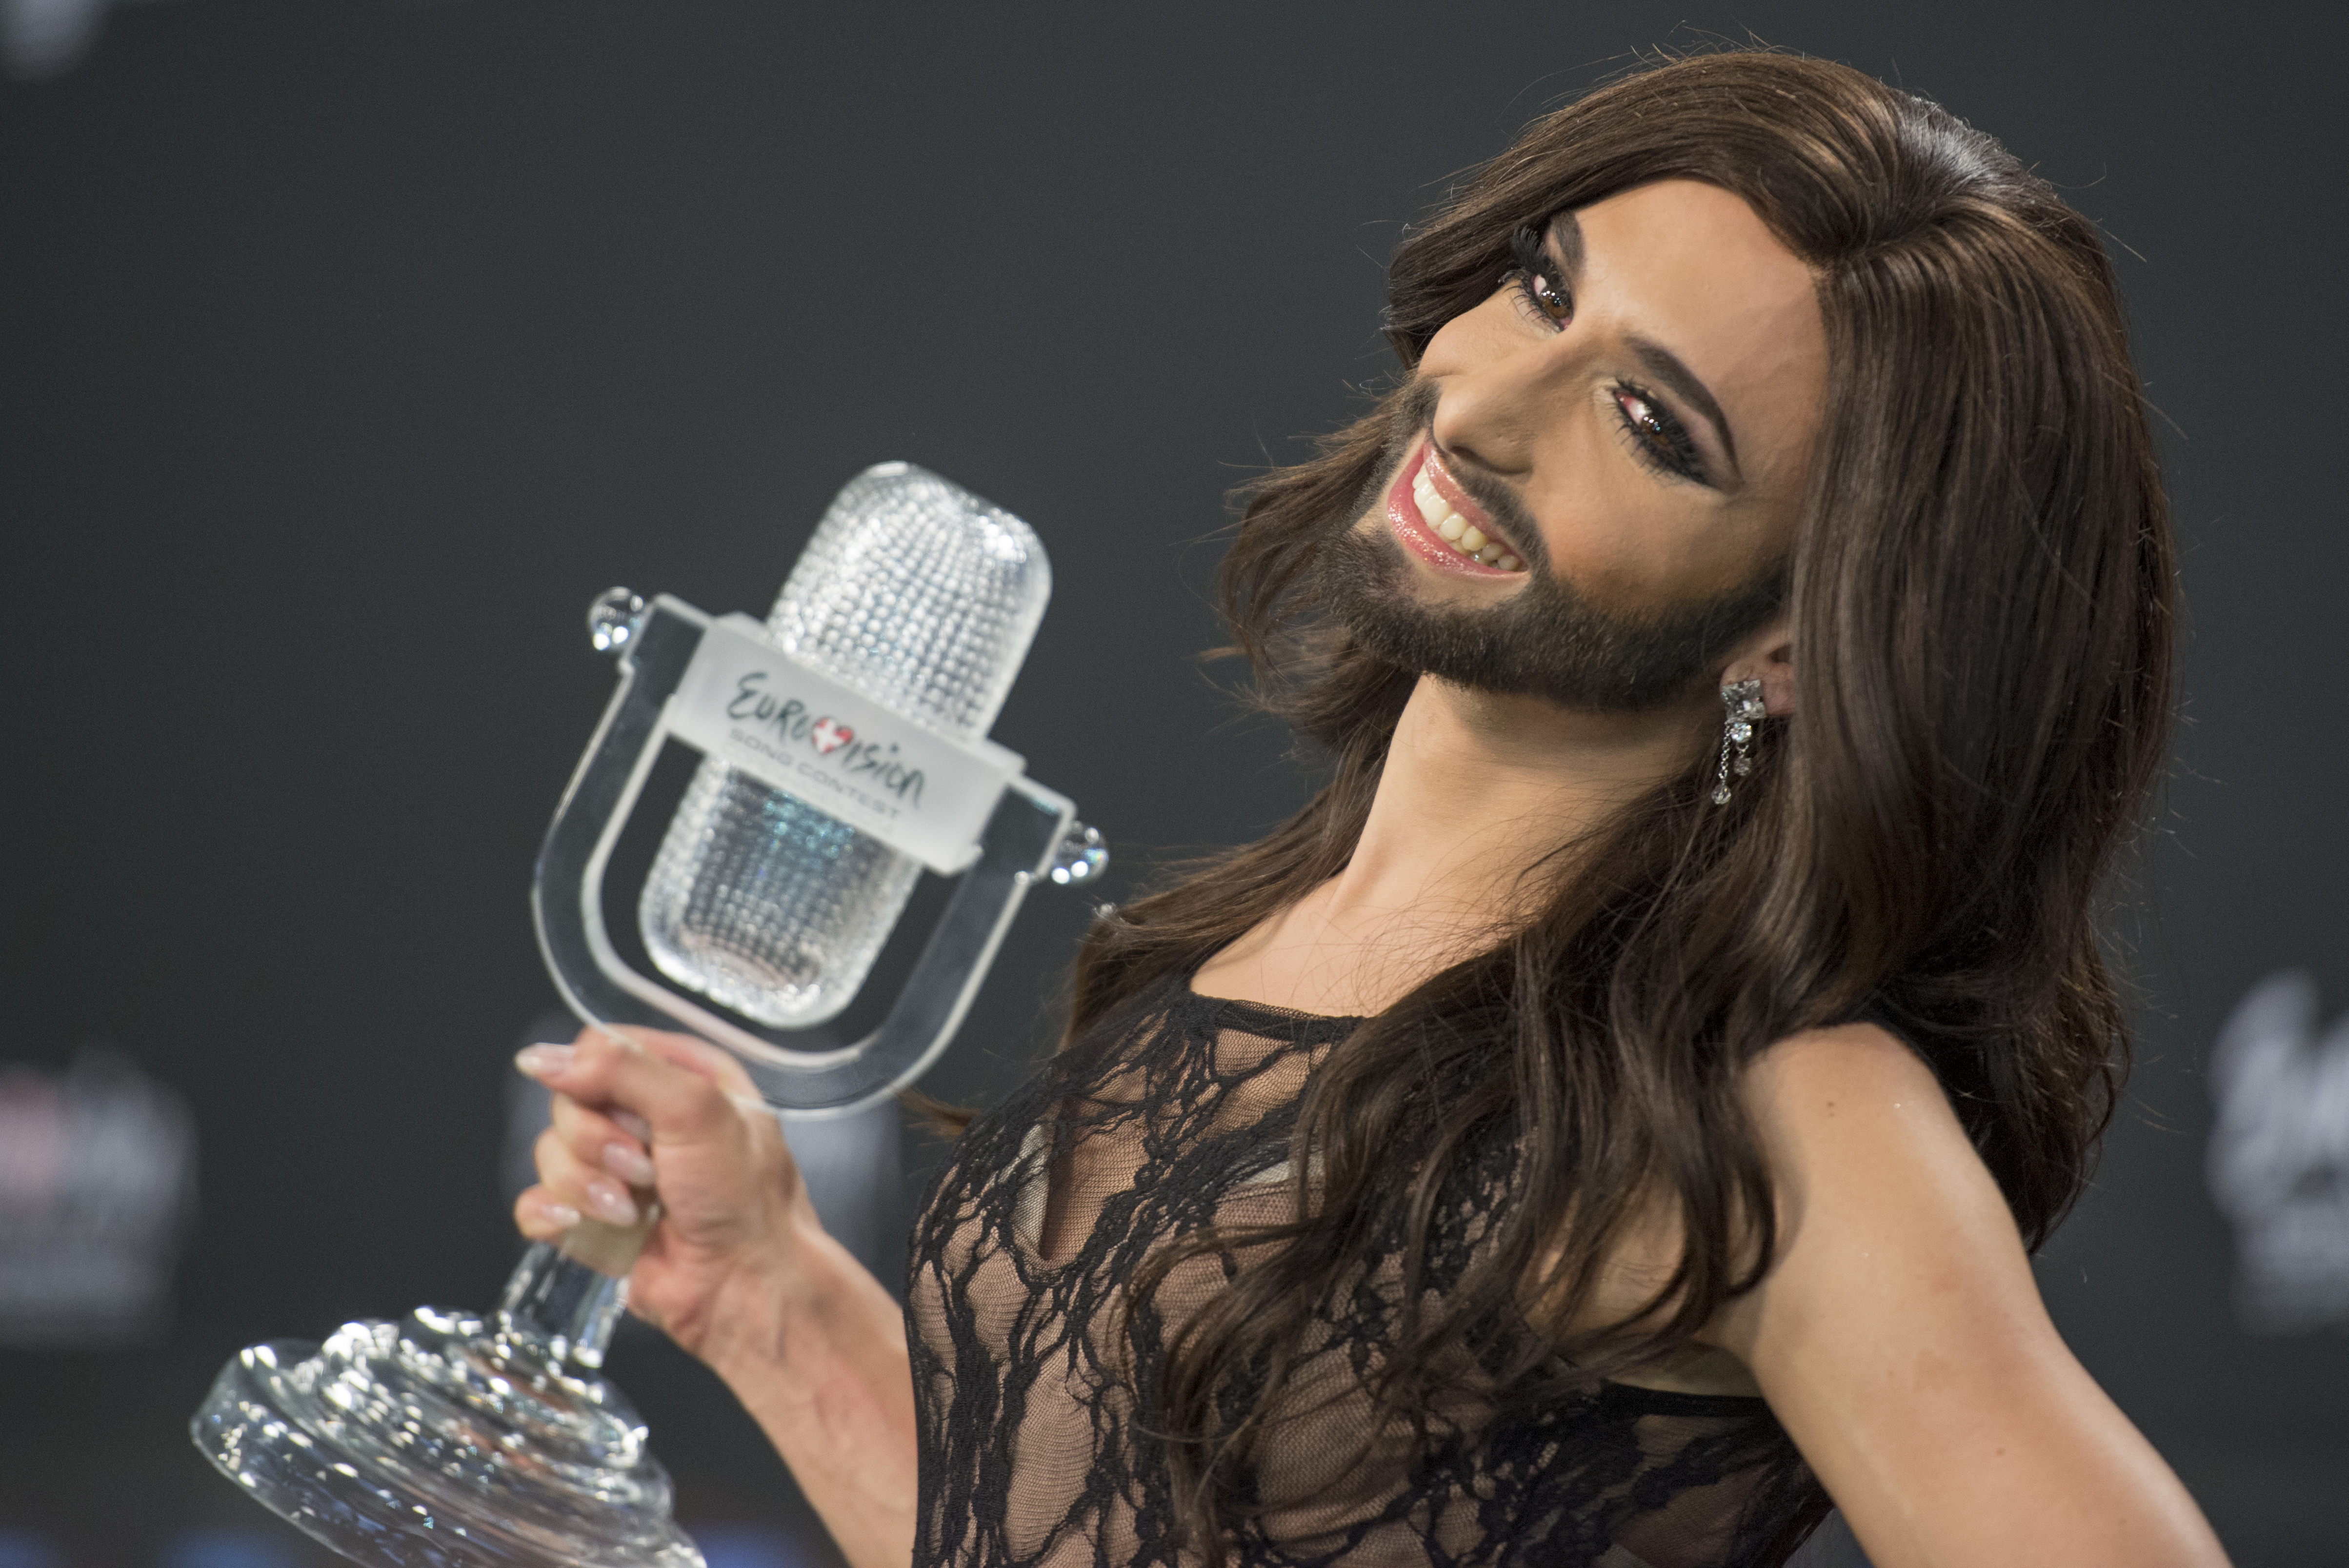 Conchita wurst and dana international in eurovision first star - Conchita Wurst And Dana International In Eurovision First Star 7